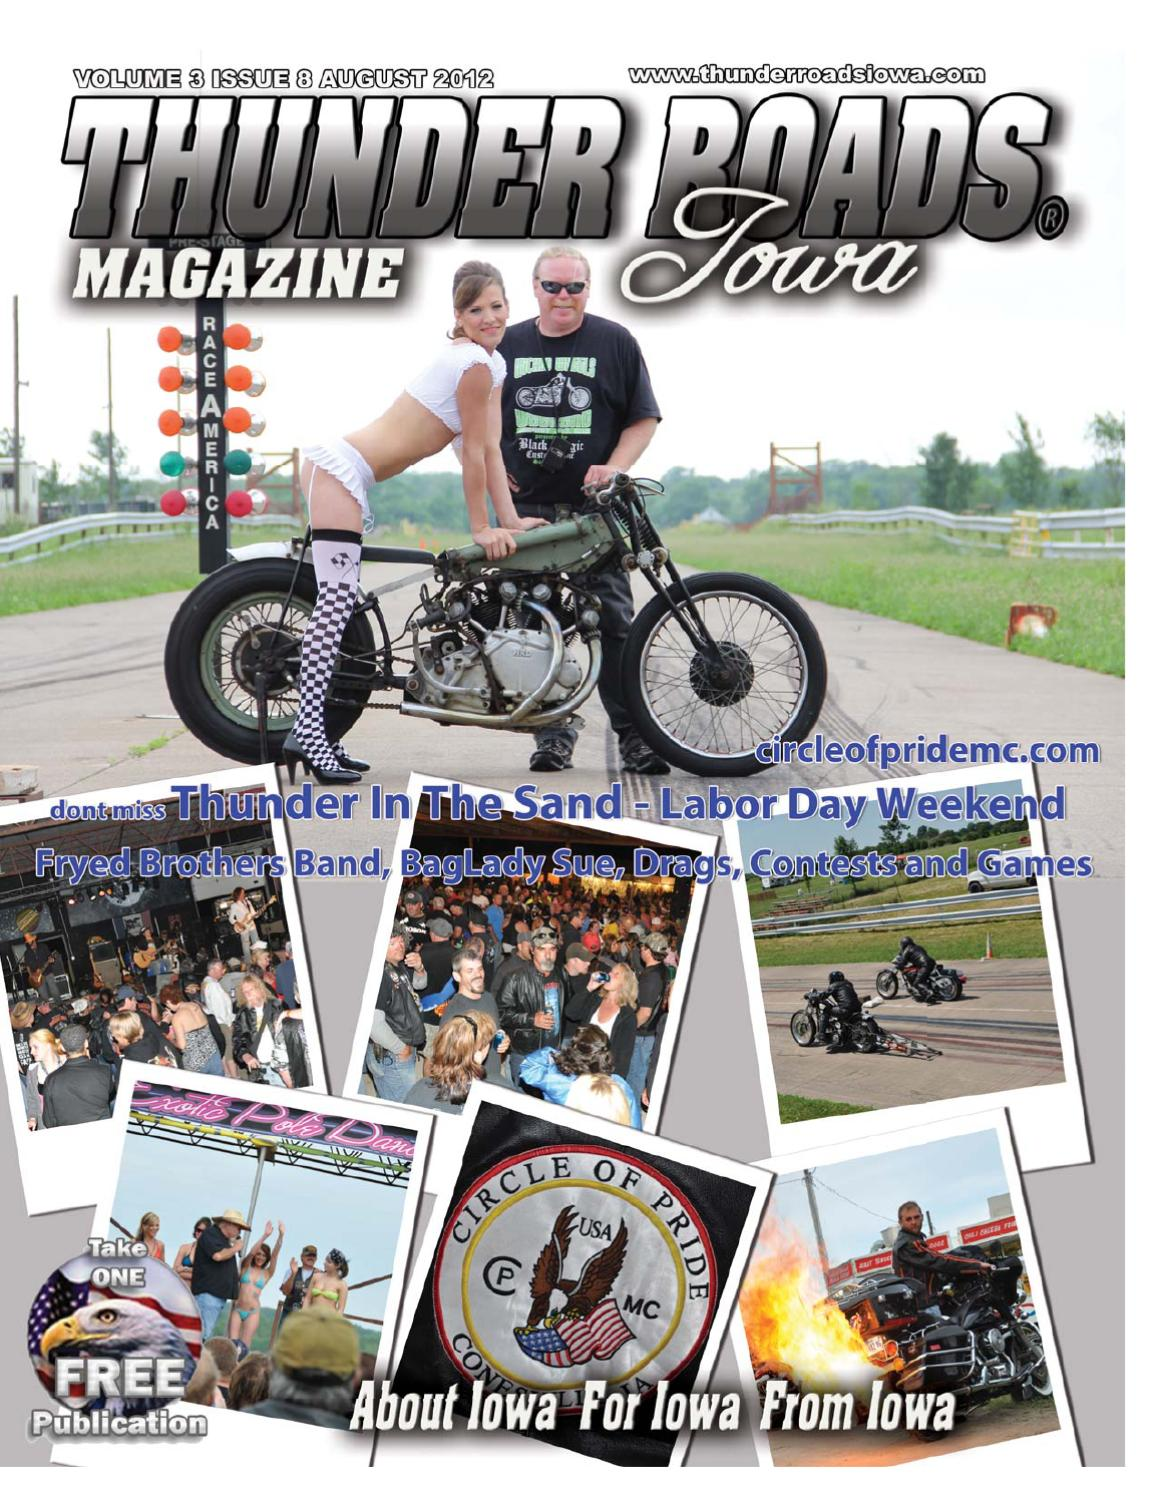 Bikes For Tykes Fort Dodge Iowa Magazine of Iowa August